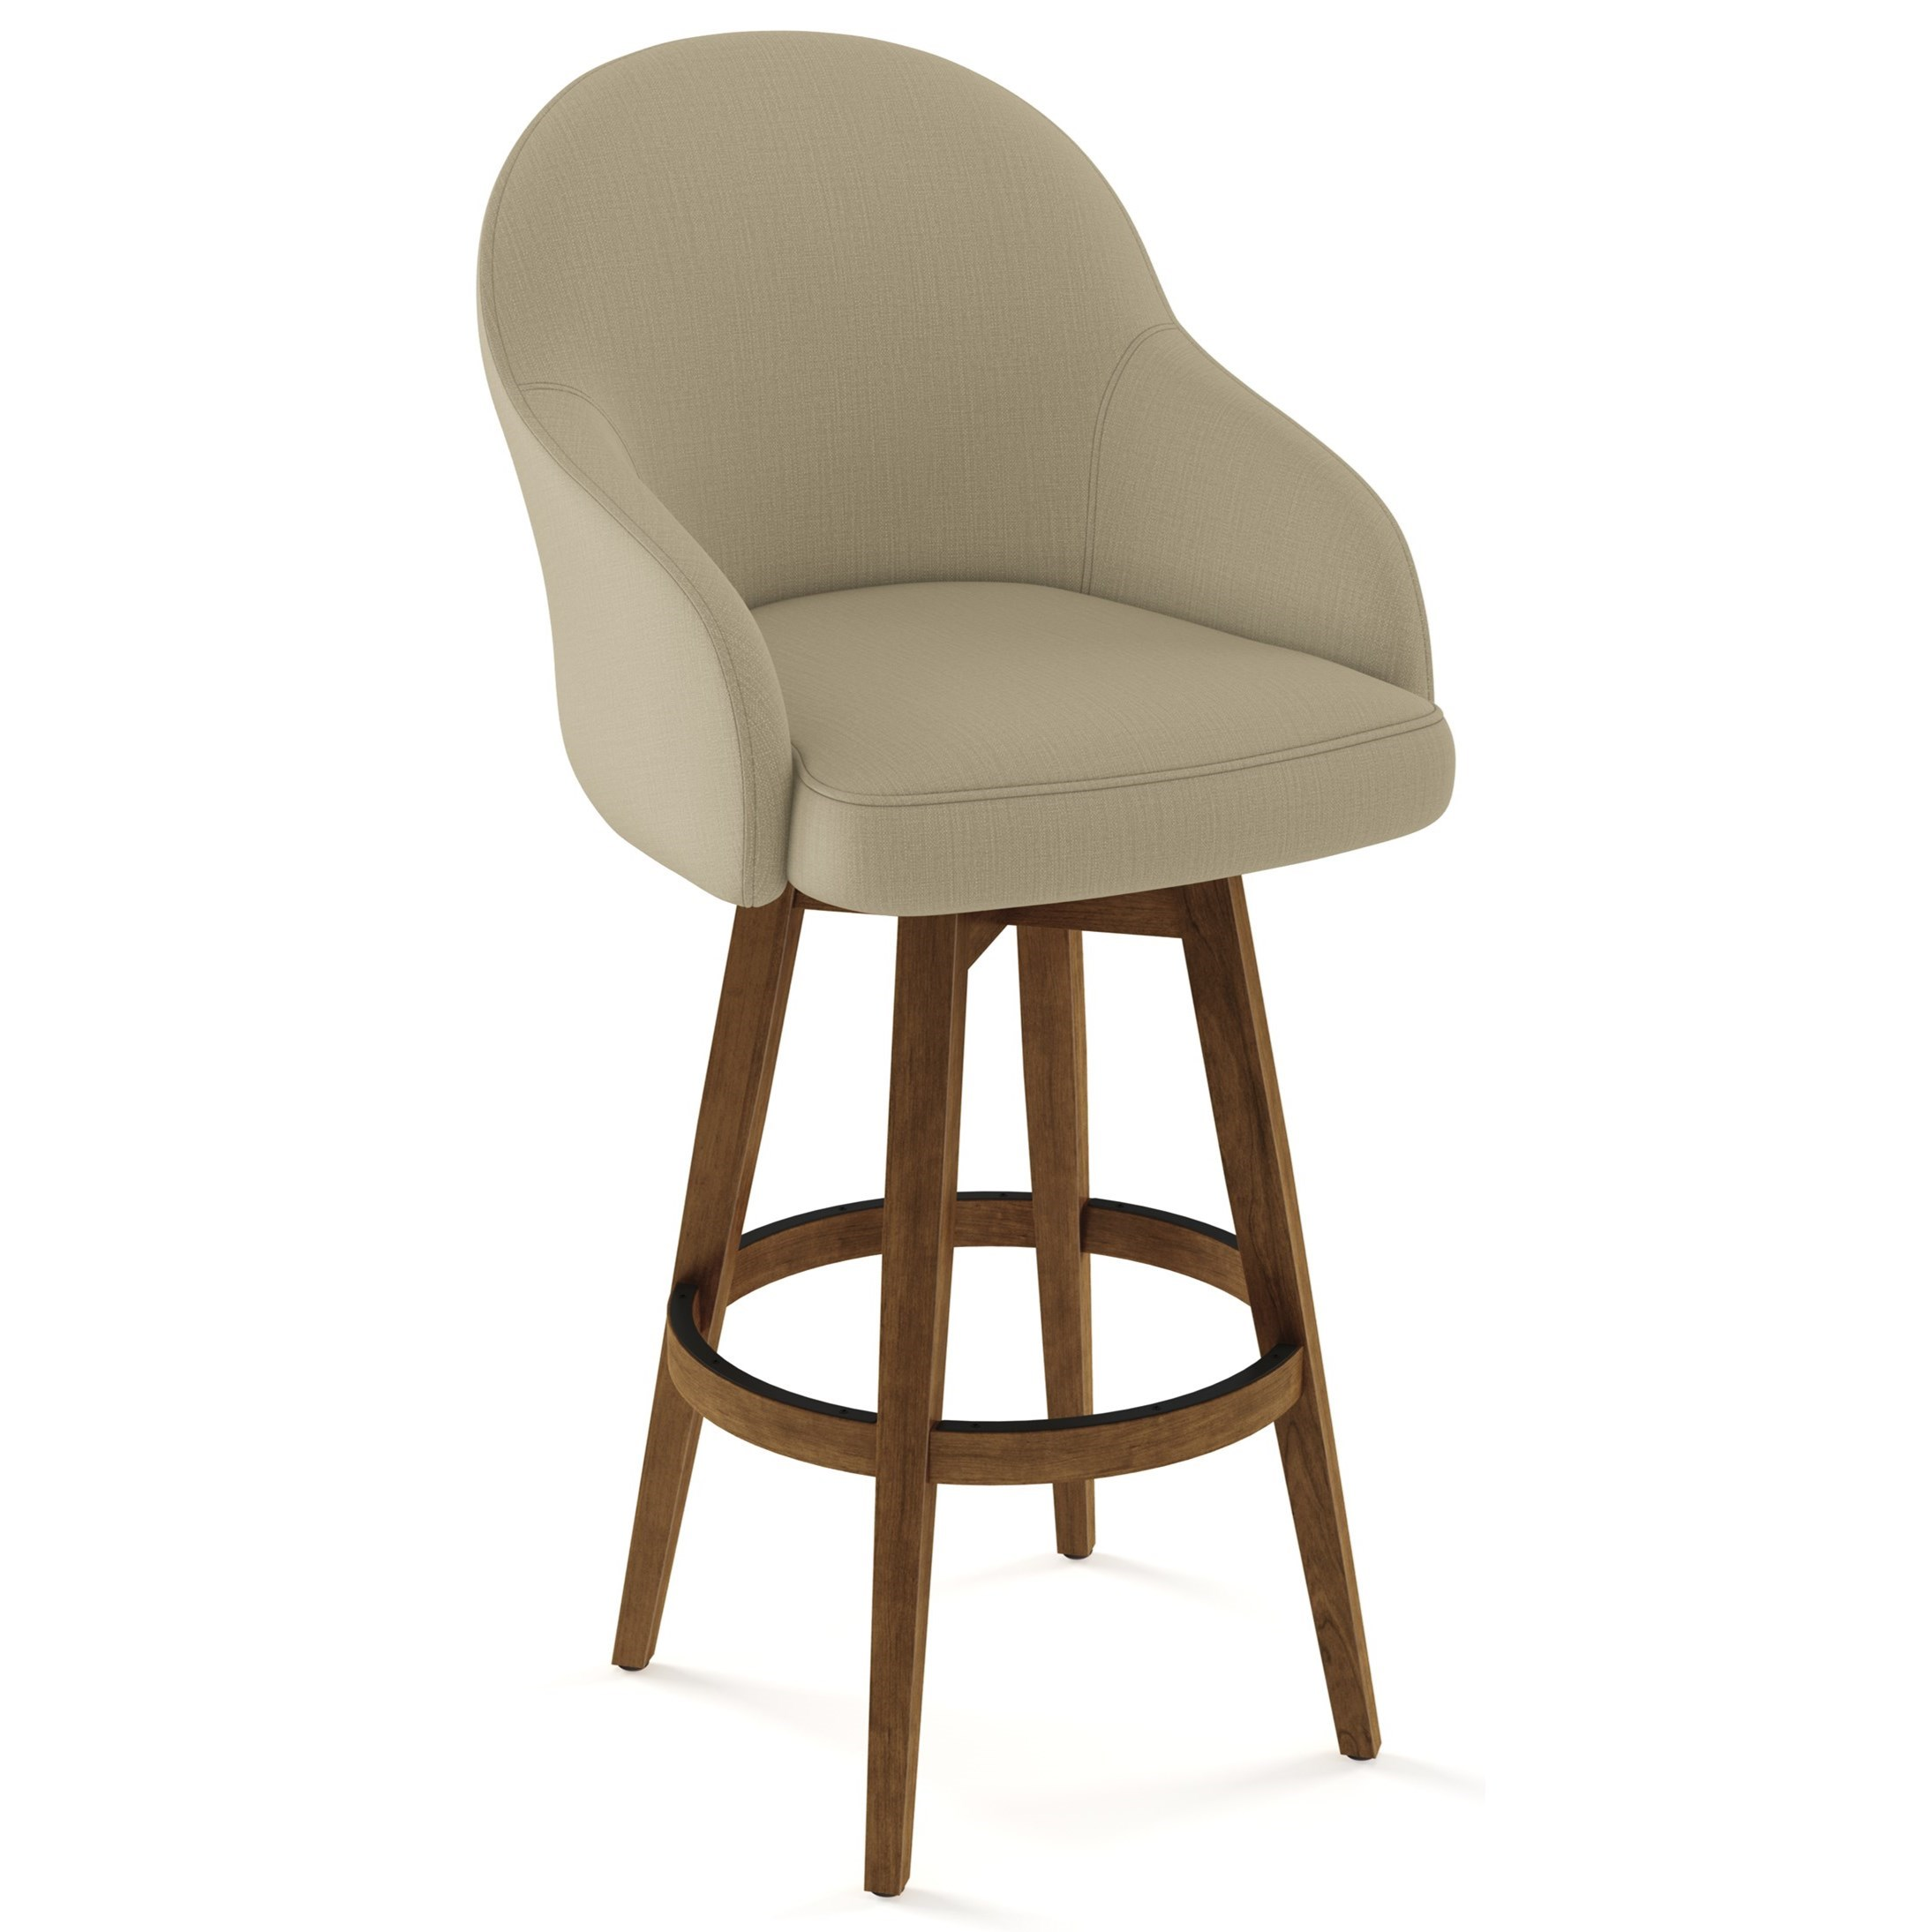 "Farmhouse 30"" Collin Swivel Bar Stool by Amisco at Rooms and Rest"